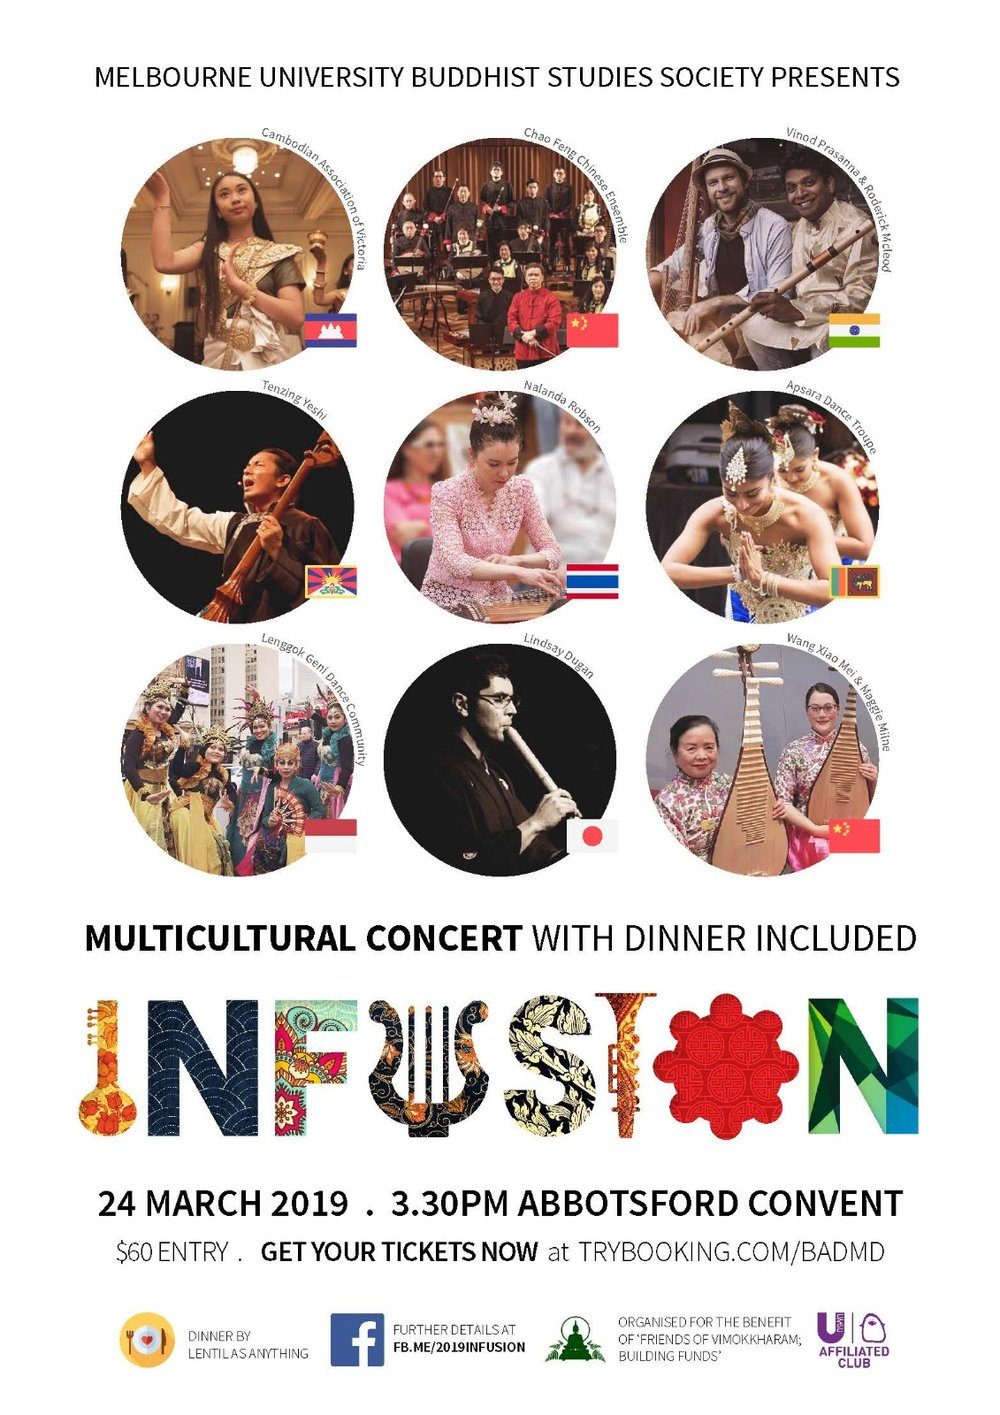 Infusion is an inaugural musical program organised by Melbourne University Buddhist Studies Society in partnership with Friends of Vimokkharam Forest Hermitage. Infusion 2019 is a culmination of contemporary and traditional music of Asia, drawing upon instruments and ideas in collaboration to create music that reflects our 21st century global society.   This concert raises funds to support the rebuilding of the Vimokkharam Forest Hermitage in Kallista, which burnt down in 2014.